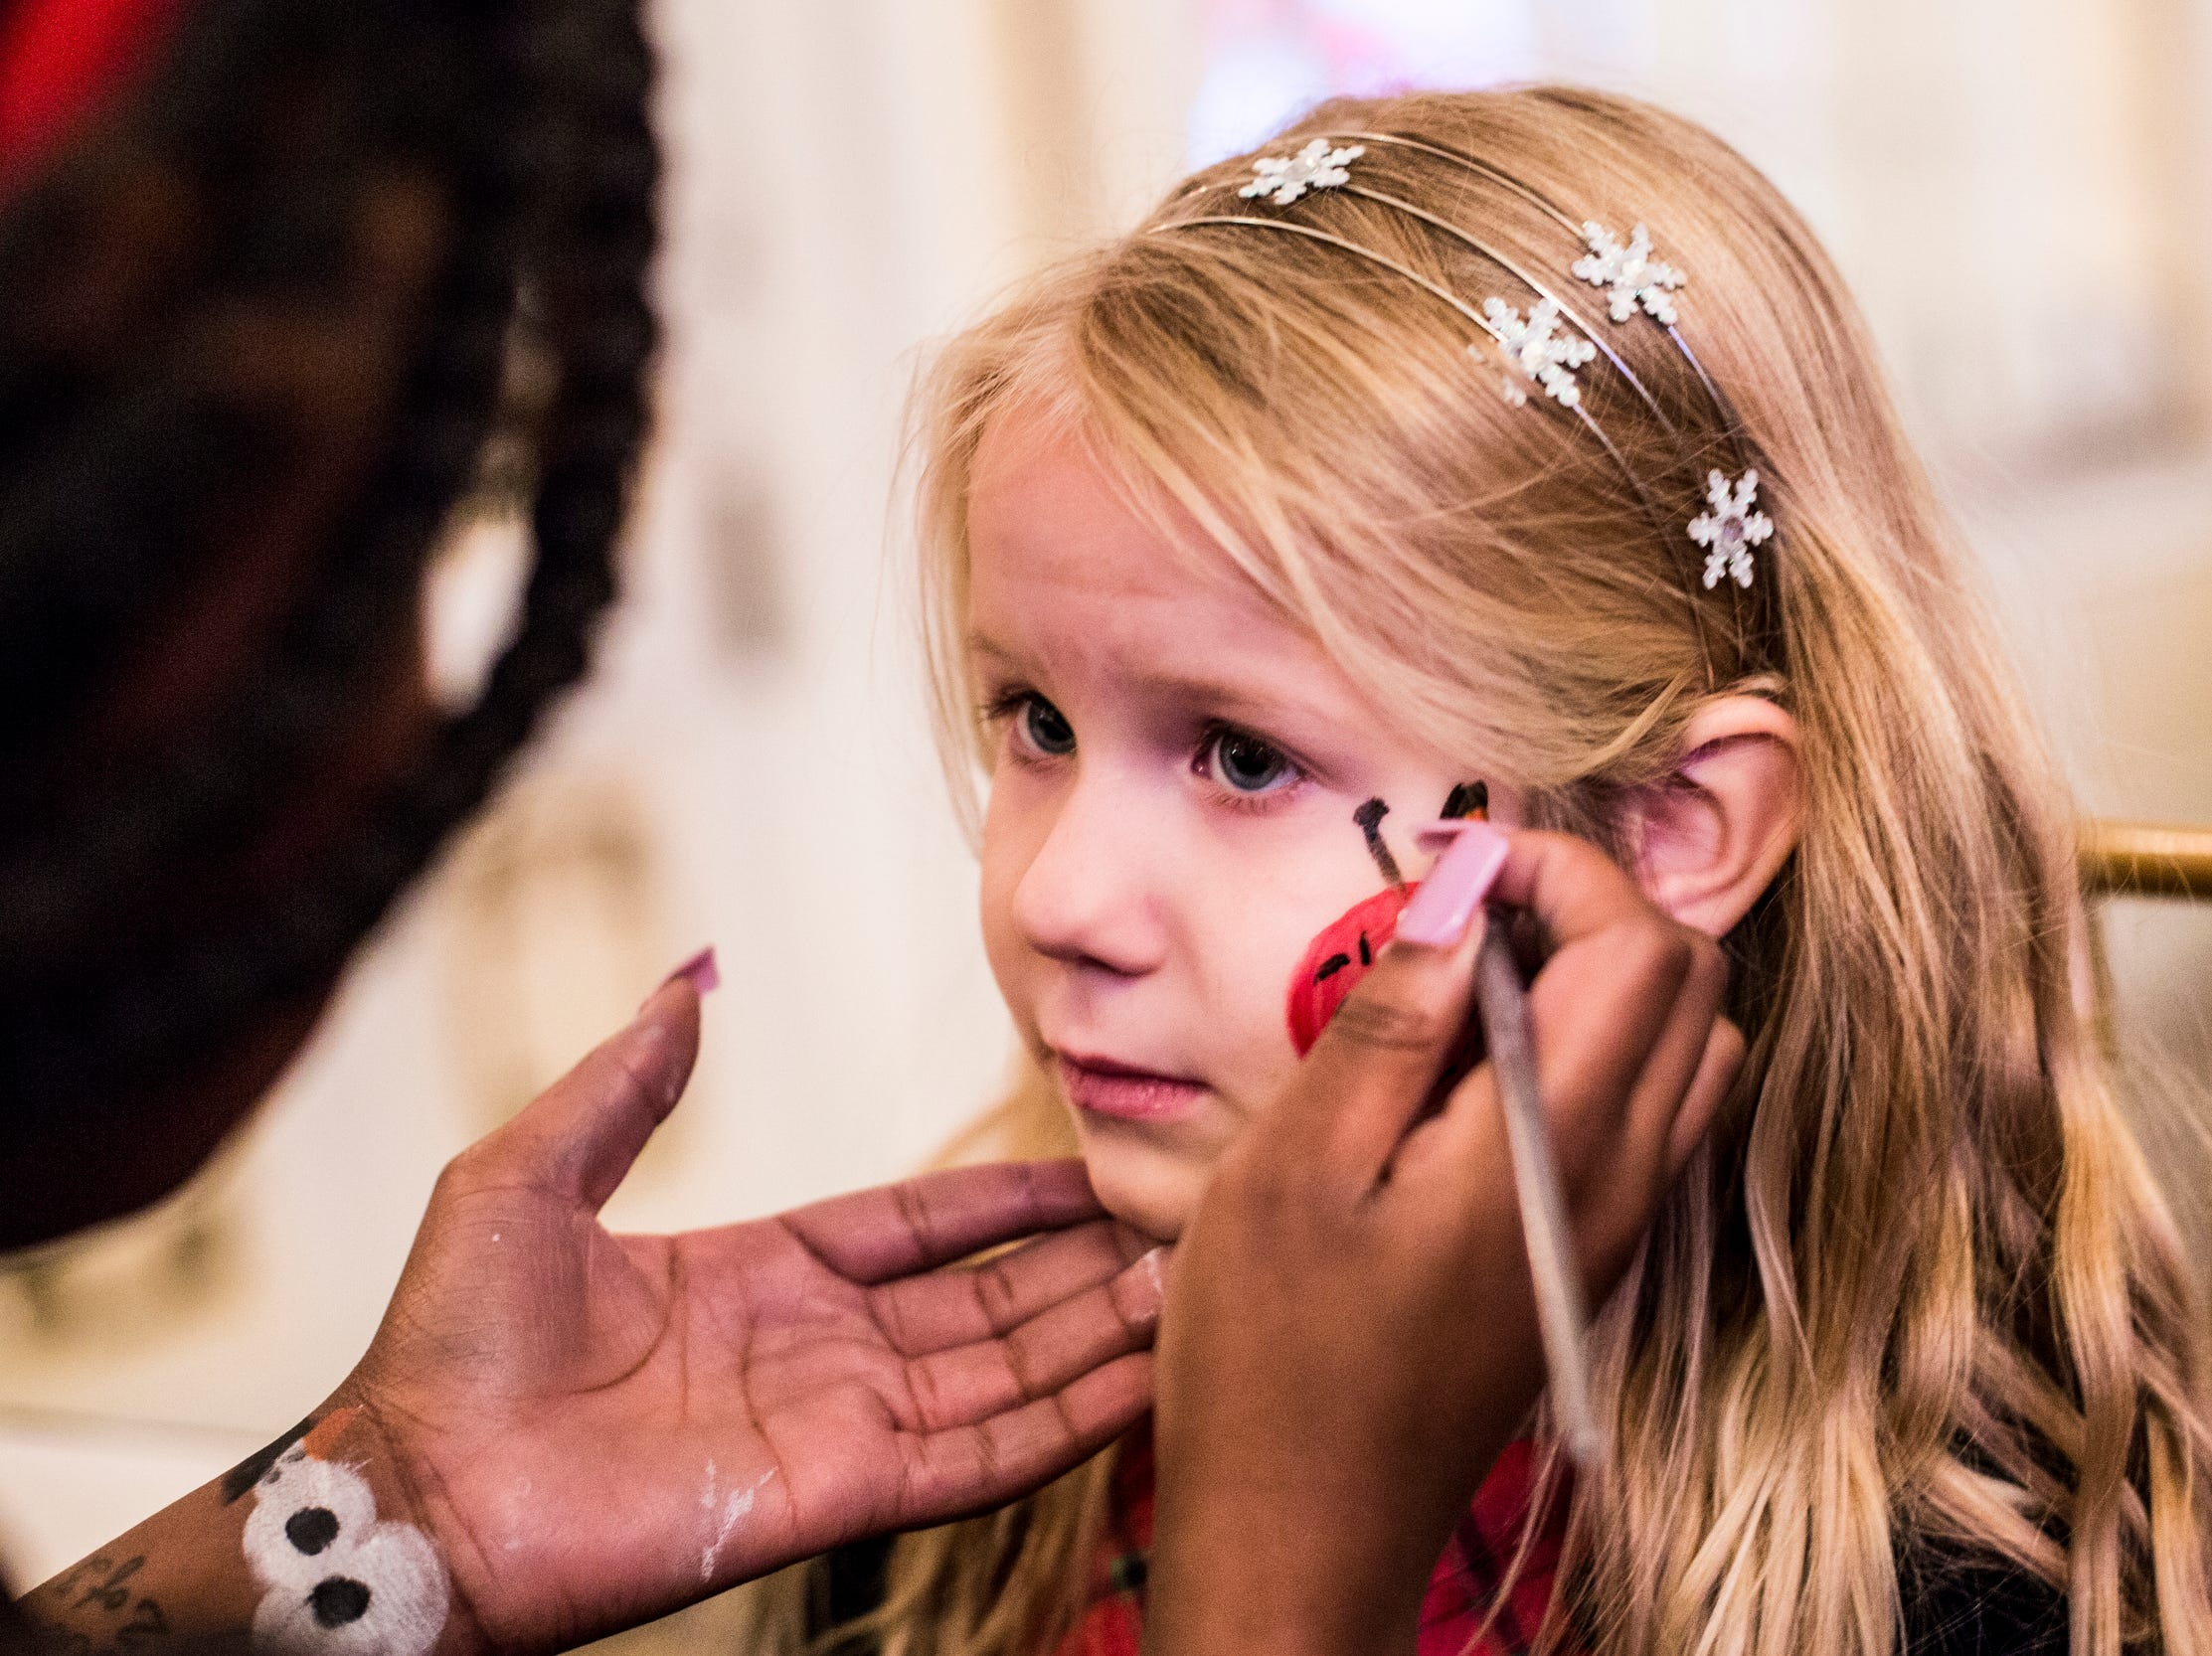 December 02 2018 - Jonna Bryant, left, paints a ladybug onto Shelby Ray, 4, during the Memphis Jingle Bell Ball Holiday Cookie Party inside of the Continental Ballroom at the Peabody Hotel on Sunday. This was the 30th anniversary of the Jingle Bell Ball.